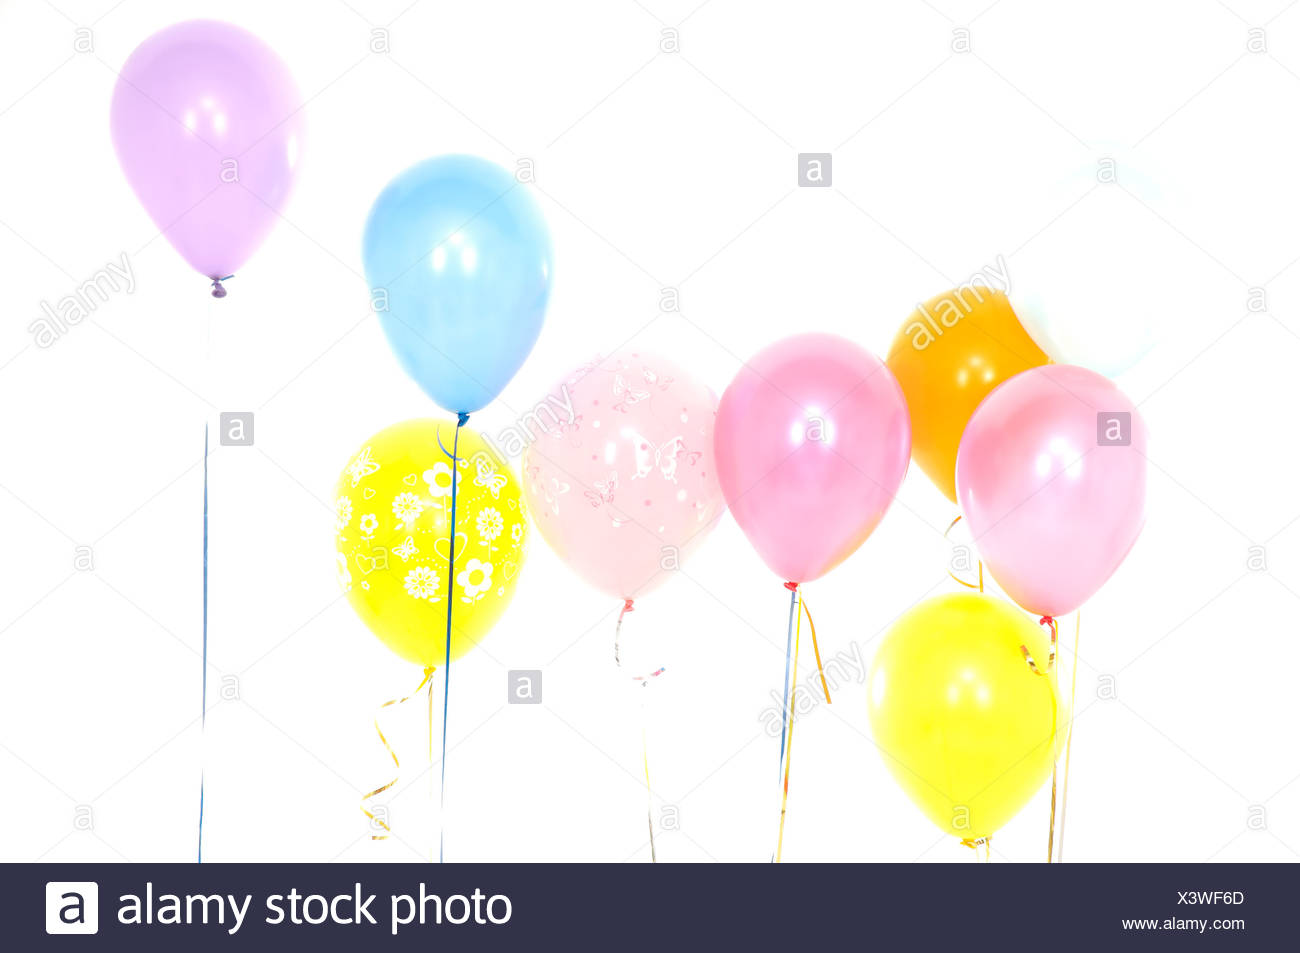 Colorful balloons in a birthday party - Stock Image